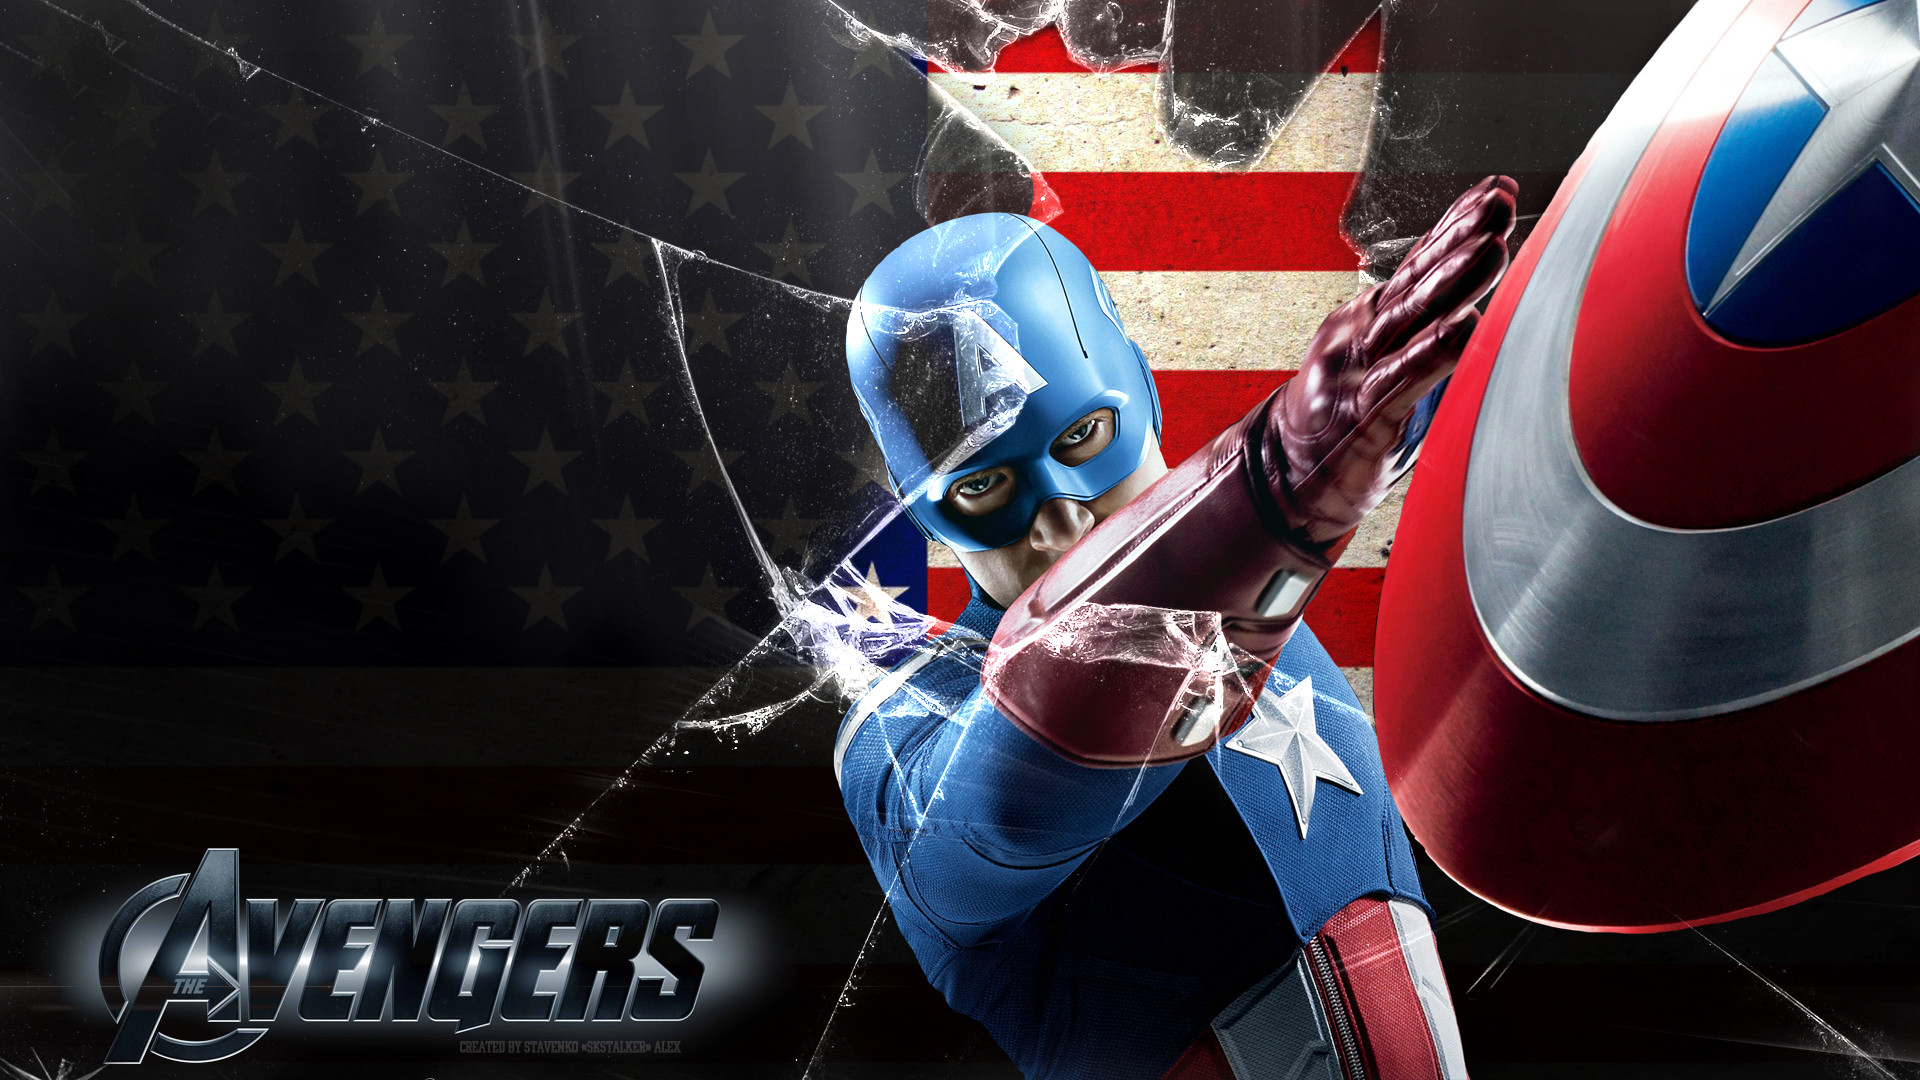 Captain America Avengers Wallpapers For Iphone On Wallpaper Hd 1920 x 1080  px 623.08 KB shield